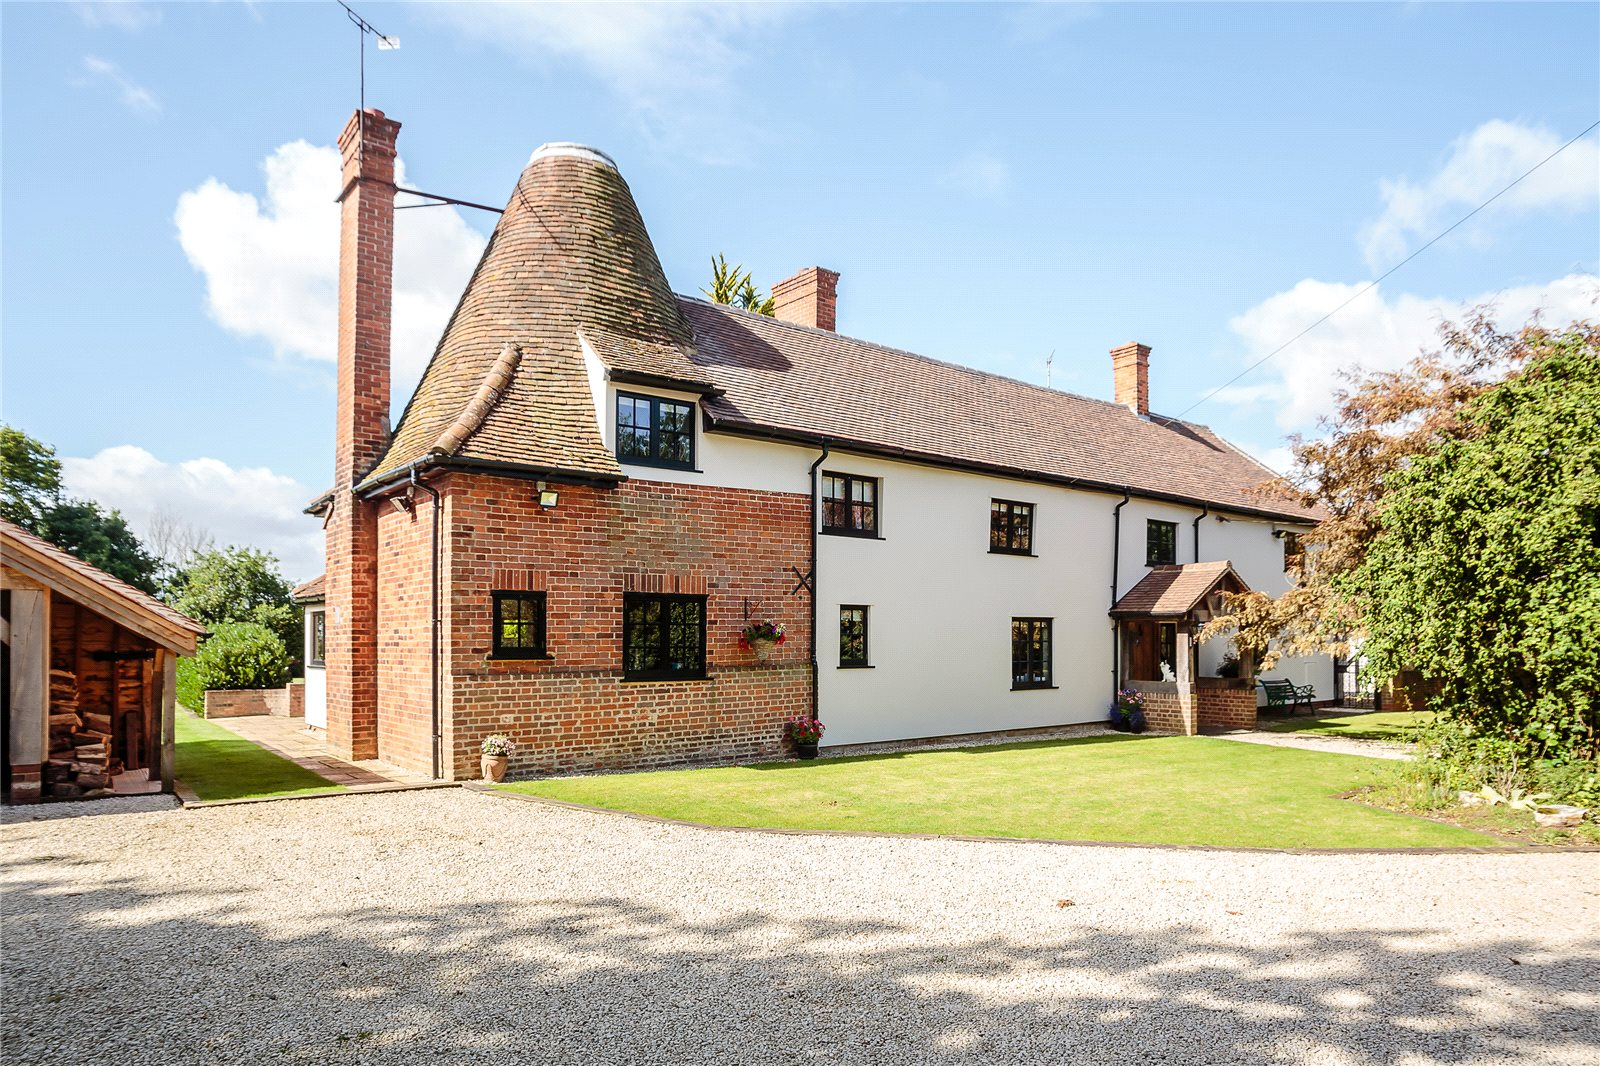 Casa Unifamiliar por un Venta en Mumfords Hill, Blackmore End, Braintree, Essex, CM7 Braintree, Inglaterra